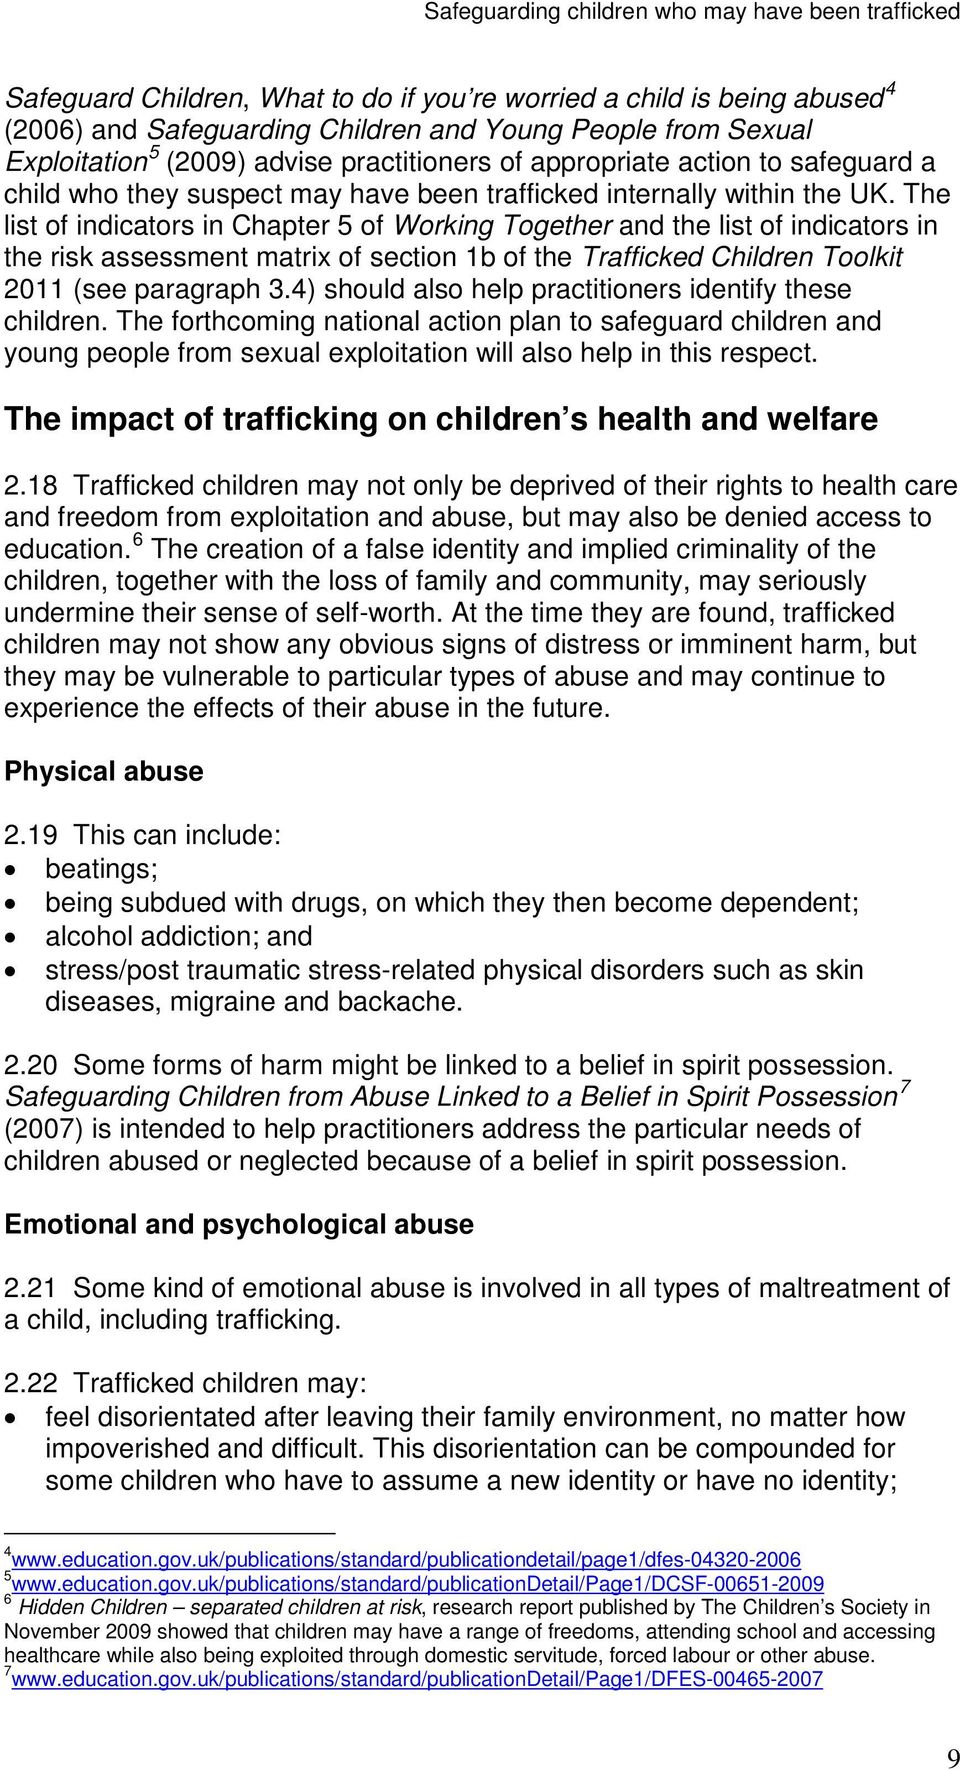 The list of indicators in Chapter 5 of Working Together and the list of indicators in the risk assessment matrix of section 1b of the Trafficked Children Toolkit 2011 (see paragraph 3.